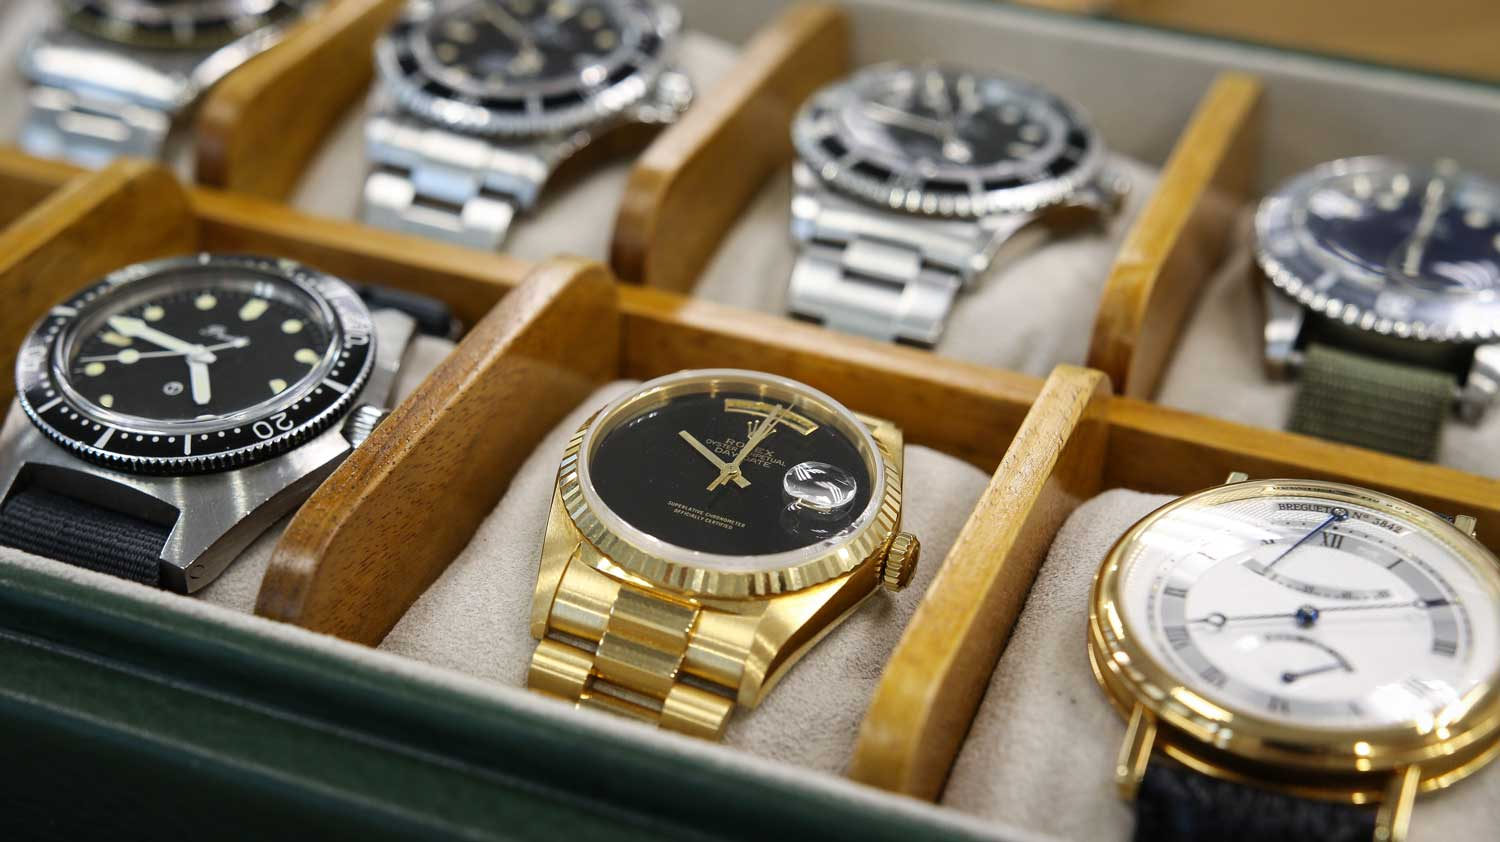 Watches from Lester Ng's collection (Image © Revolution)